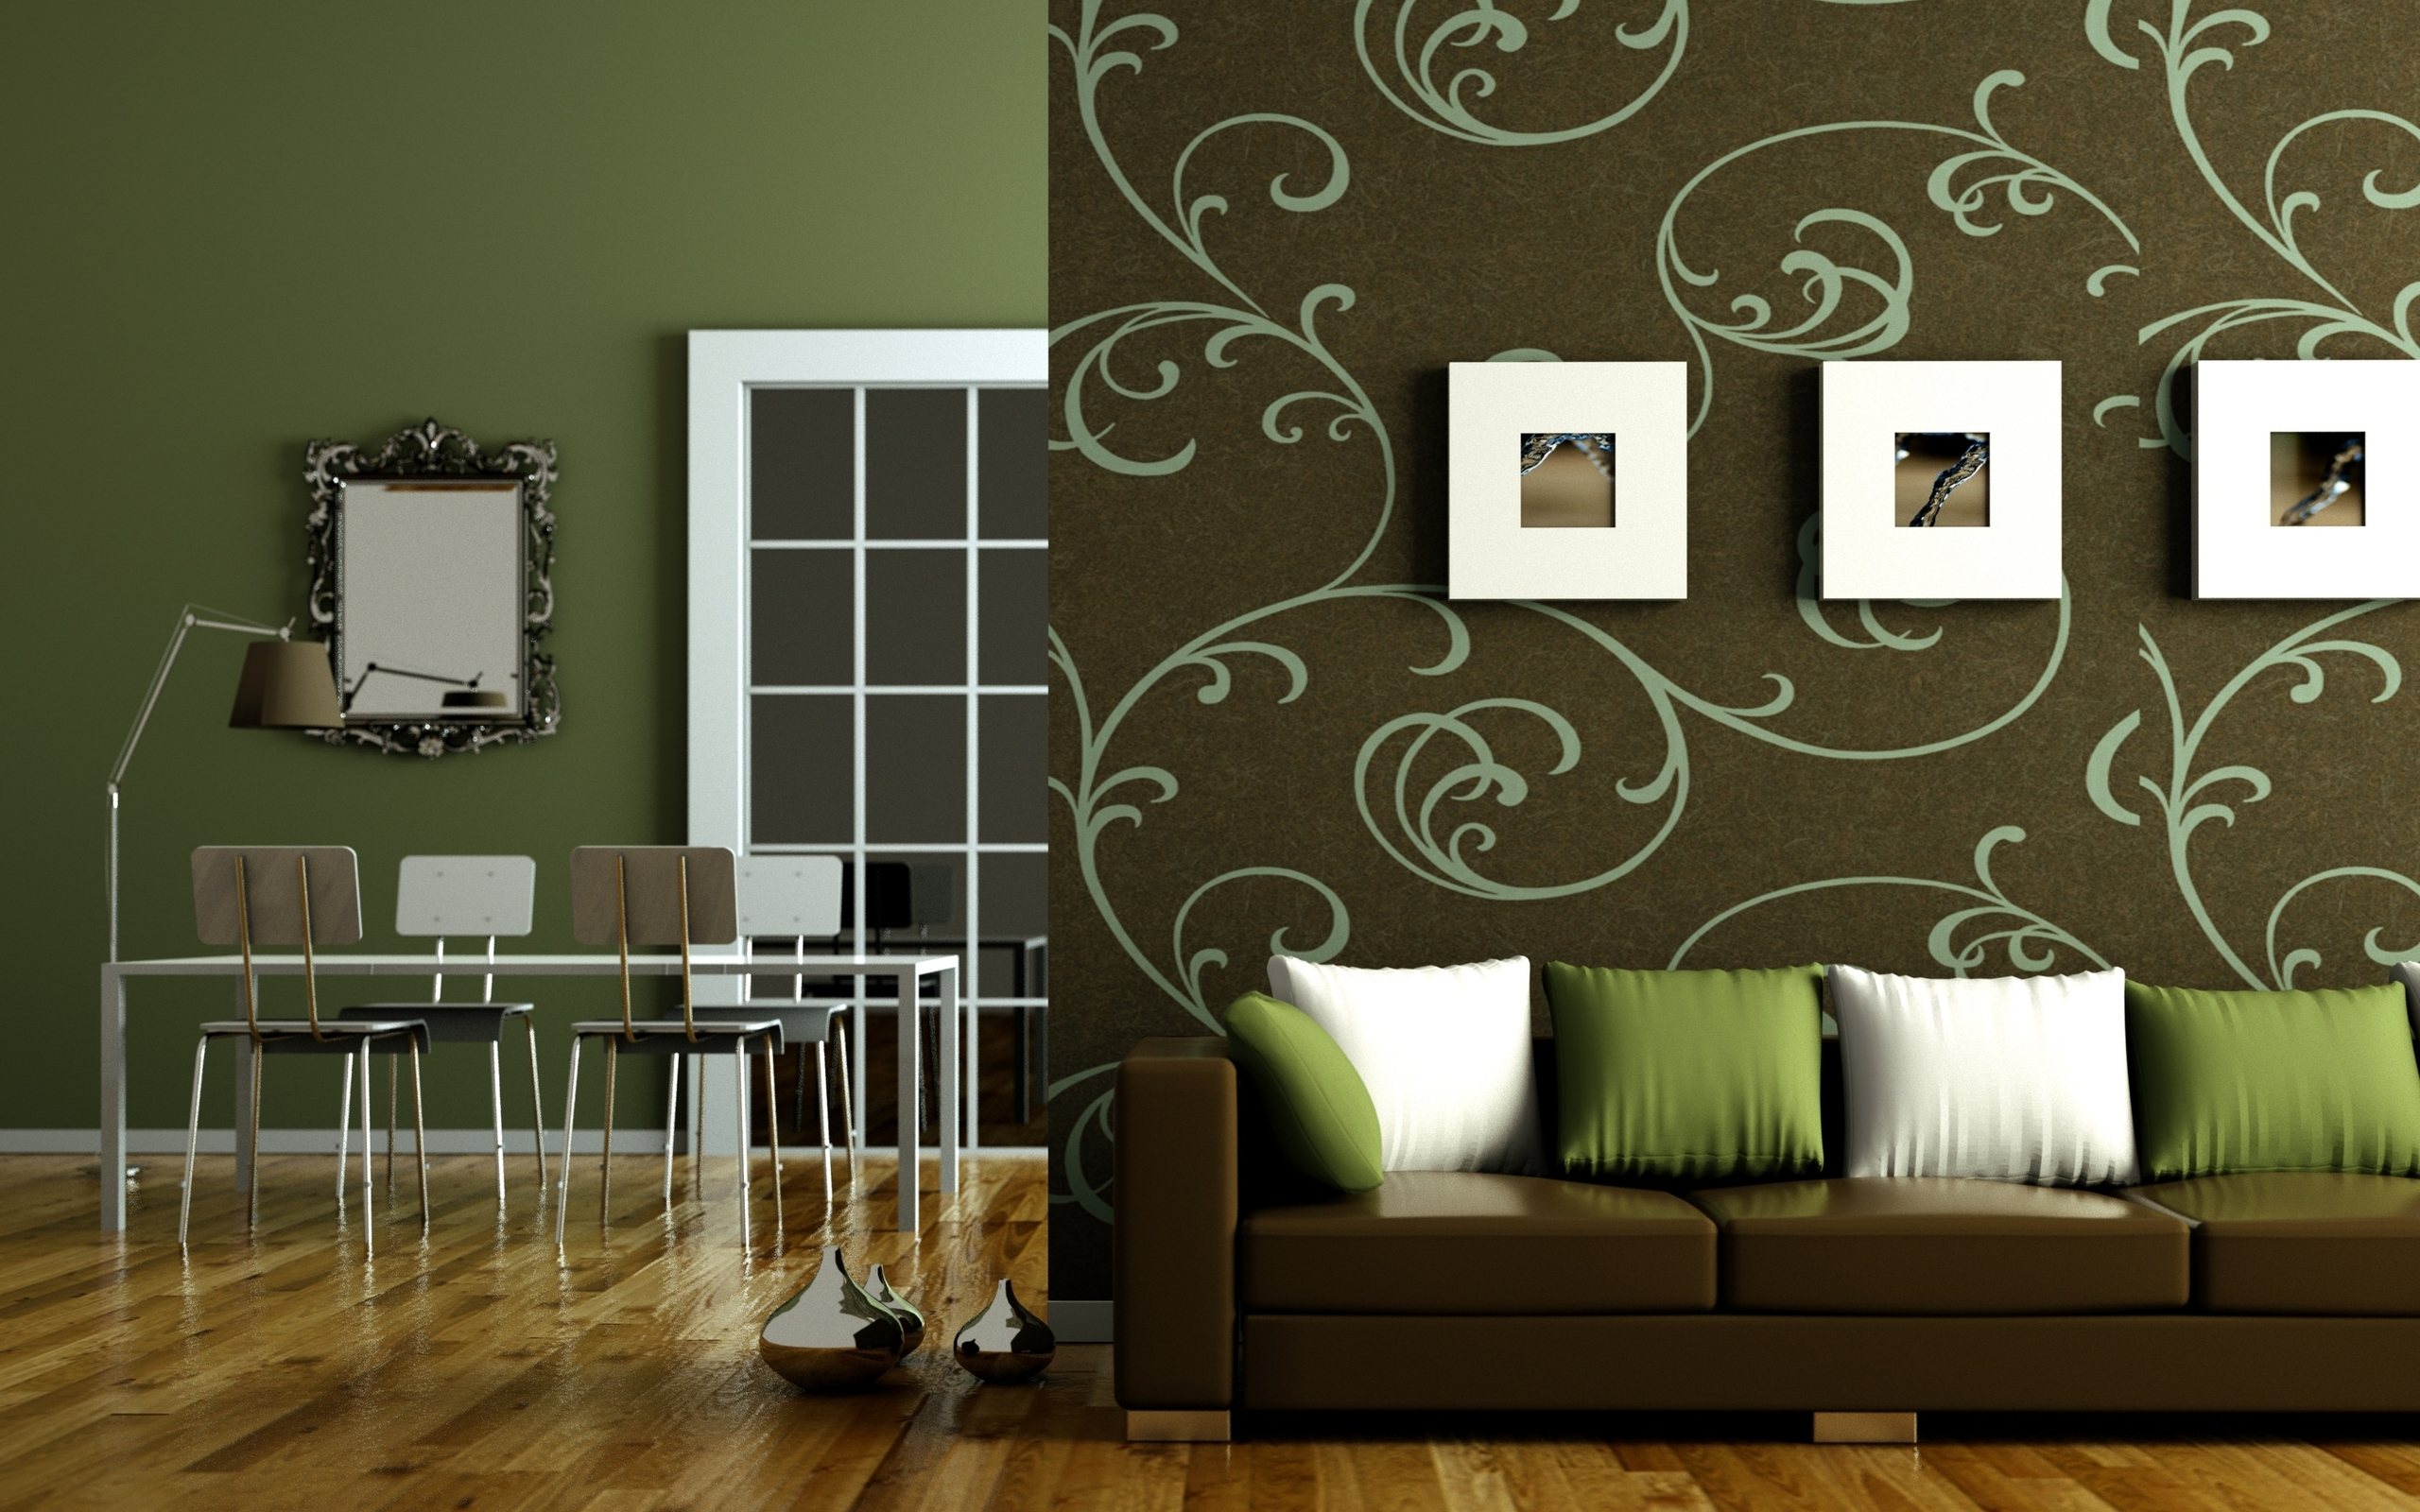 Flat interior design wallpapers 2560x1600 2111877 for Interior design images free download